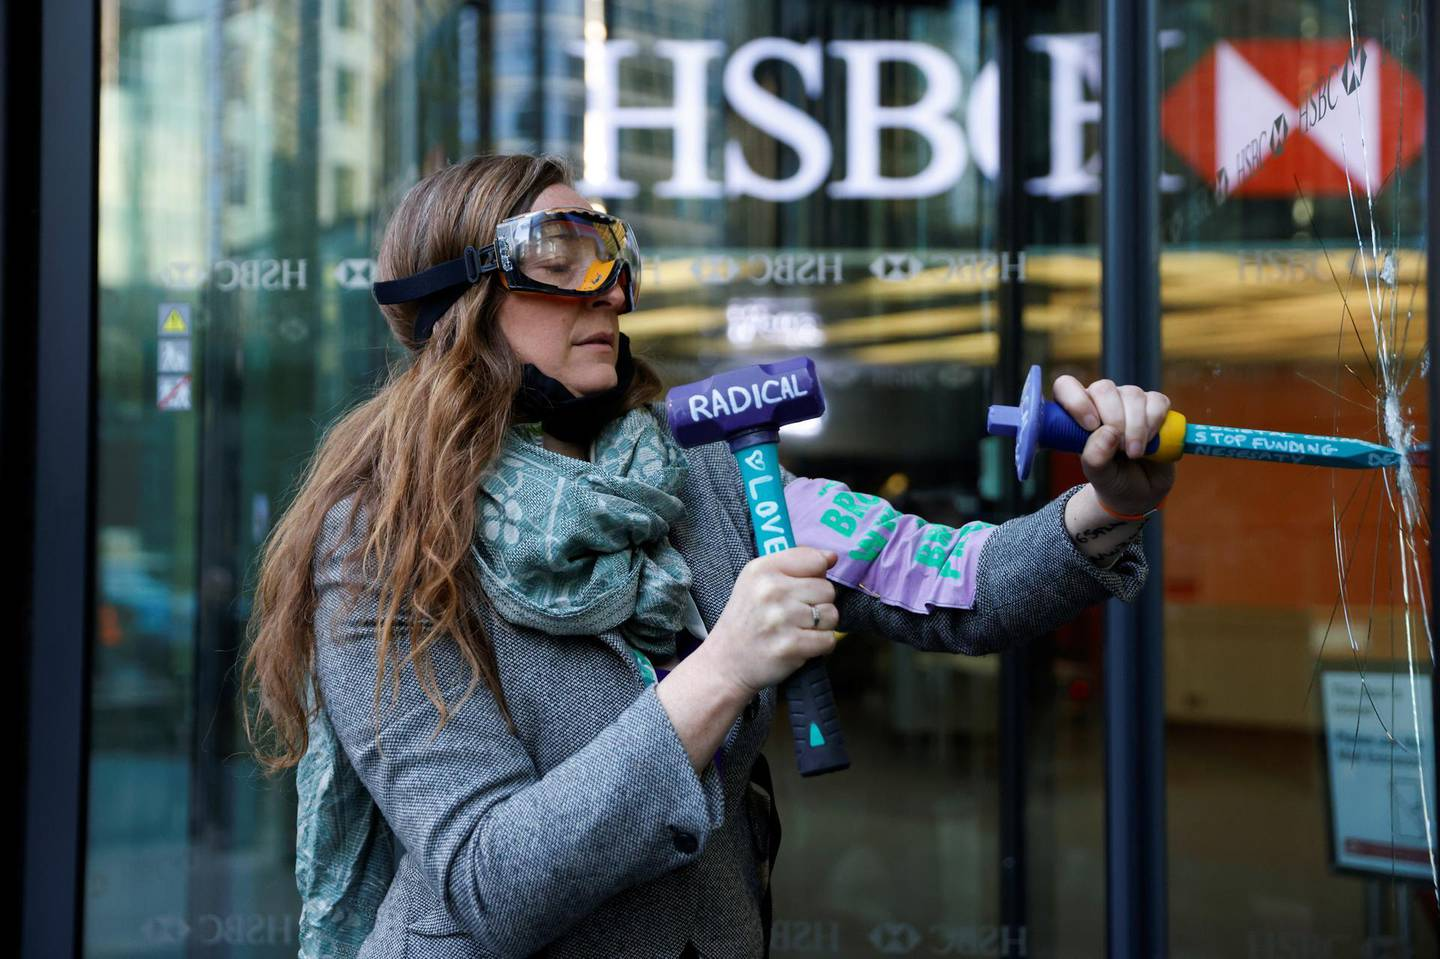 An activist from the Extinction Rebellion, a global environmental movement, smashes a window at HSBC headquarters during a protest in Canary Wharf, London, Britain April 22, 2021. REUTERS/John Sibley